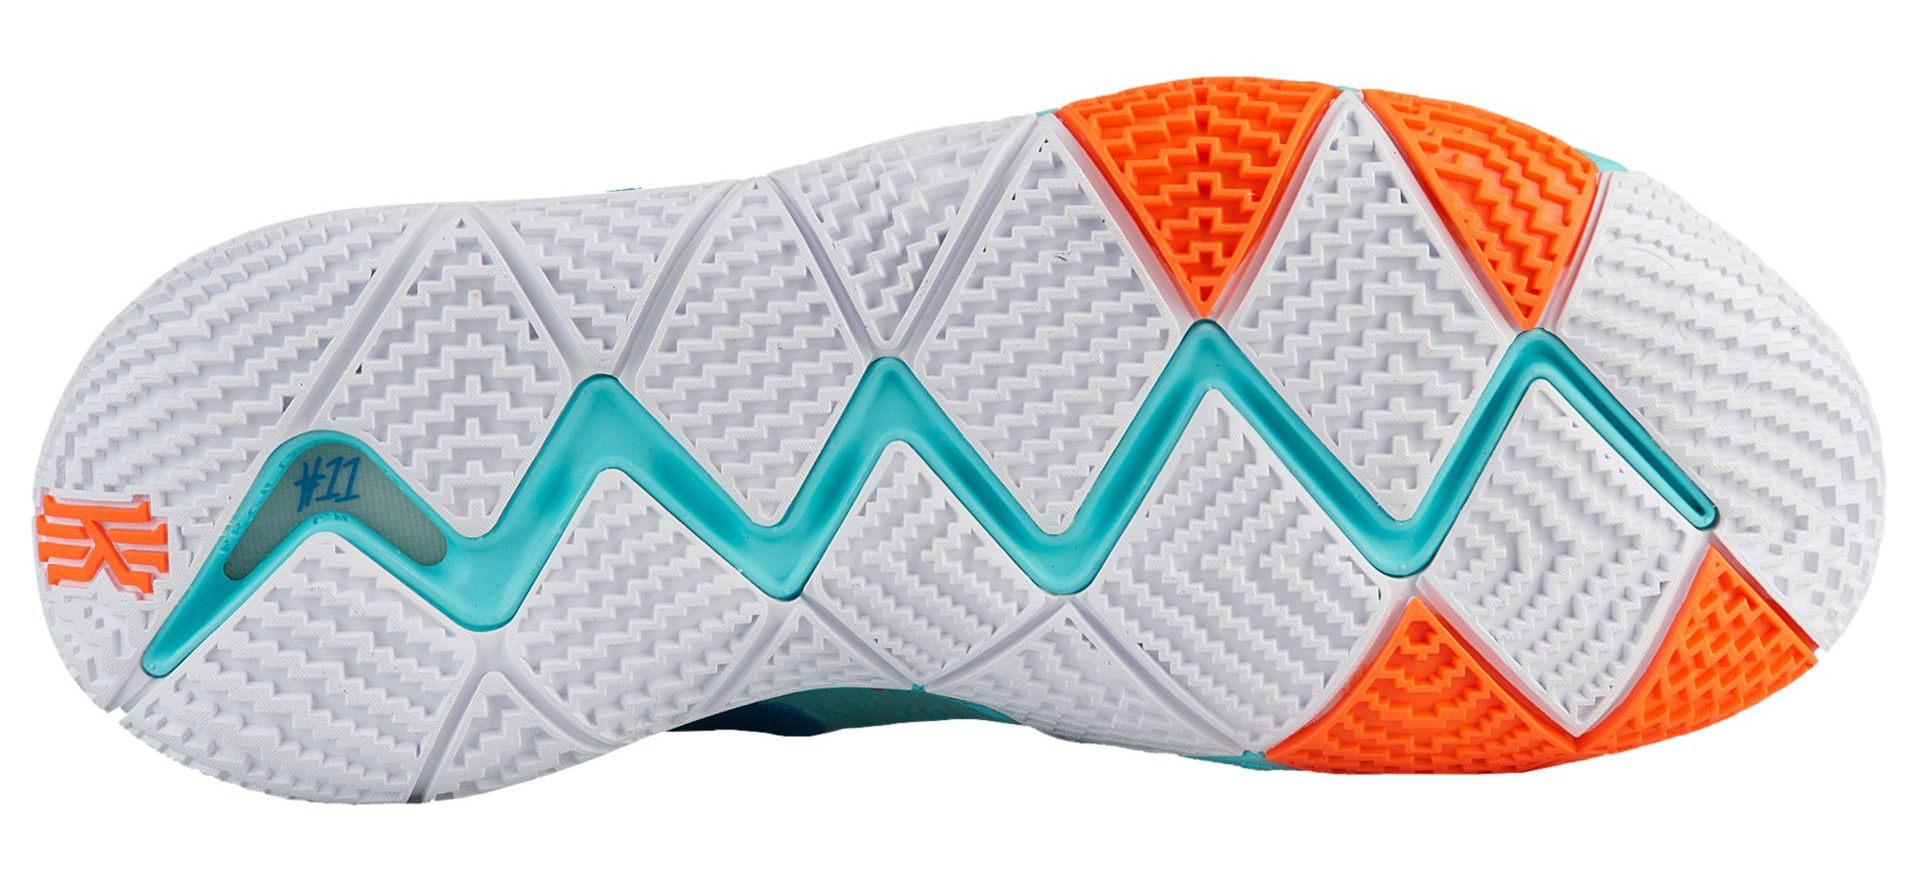 new product 4da98 b9c6d The Nike Kyrie 4 'Power is Female' is Available Now ...